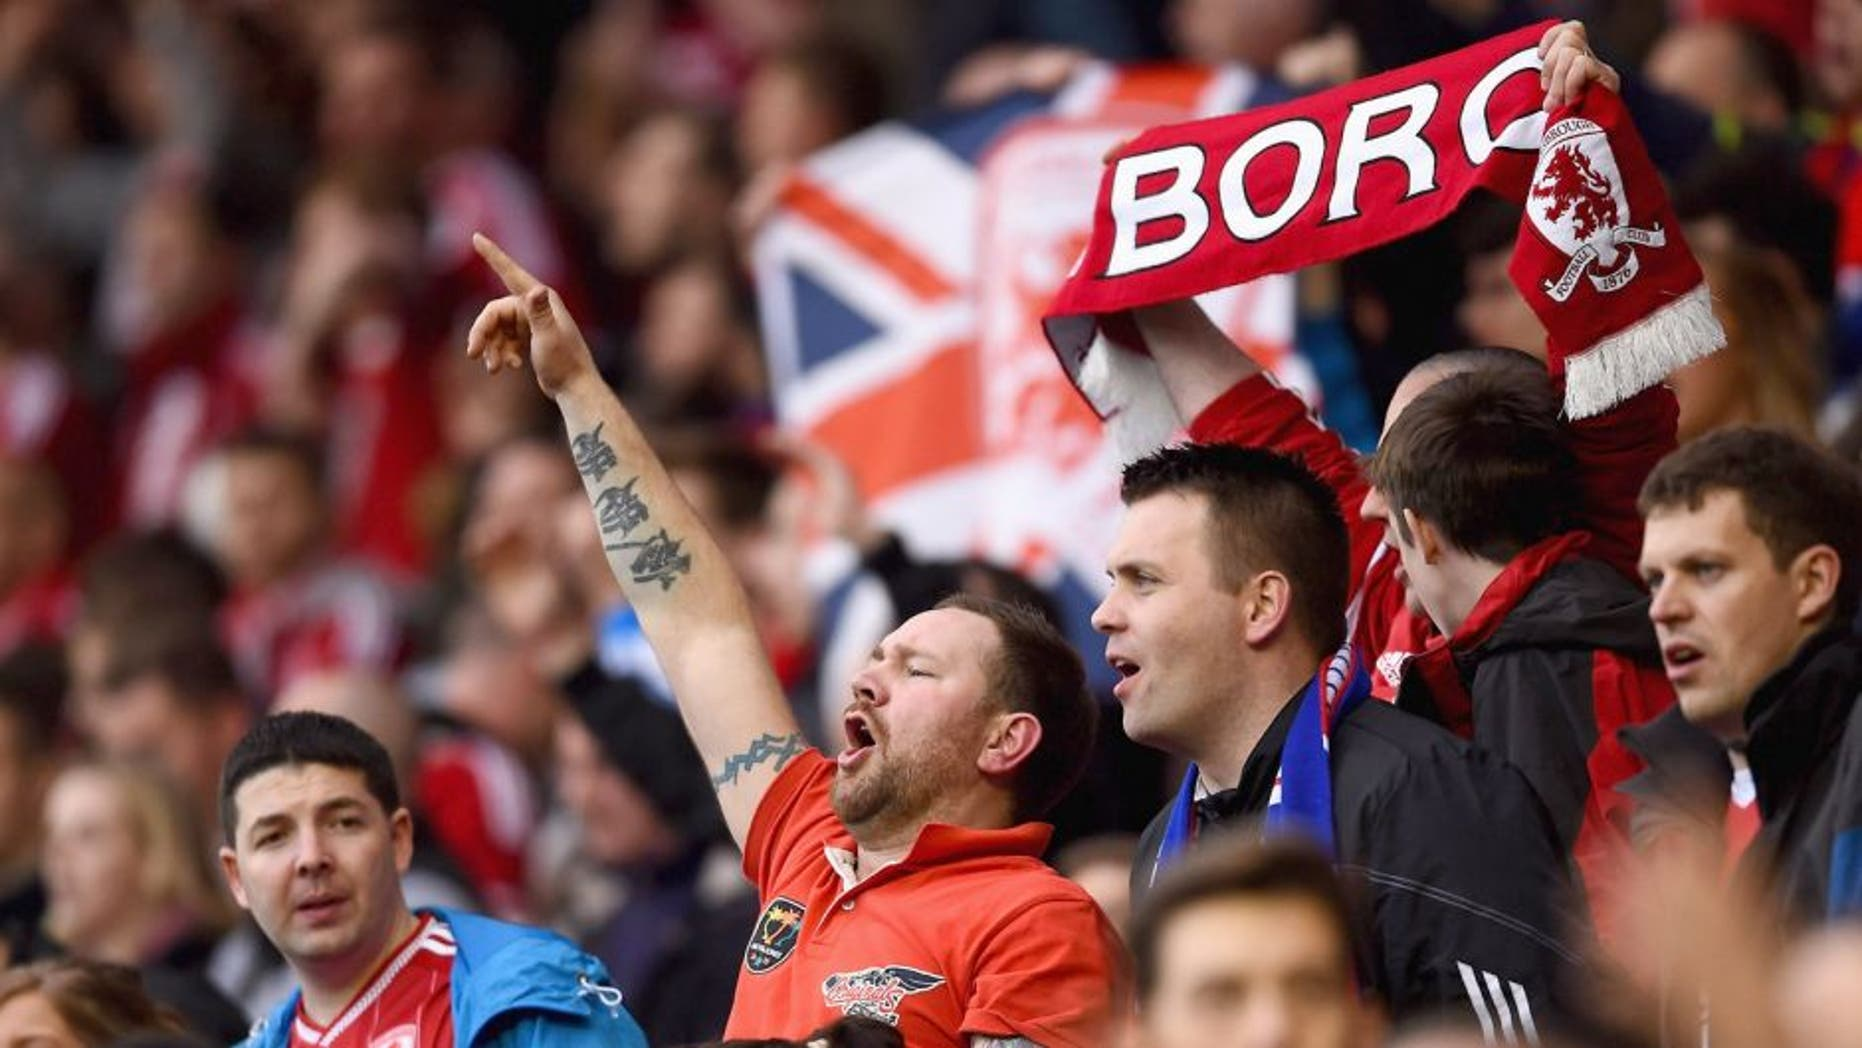 MIDDLESBROUGH, ENGLAND - MAY 15: Middlesbrough fans show their support during the Sky Bet Championship Playoff semi final second leg match between Middlesbrough and Brentford at the Riverside Stadium on May 15, 2015 in Middlesbrough, England. (Photo by Laurence Griffiths/Getty Images)